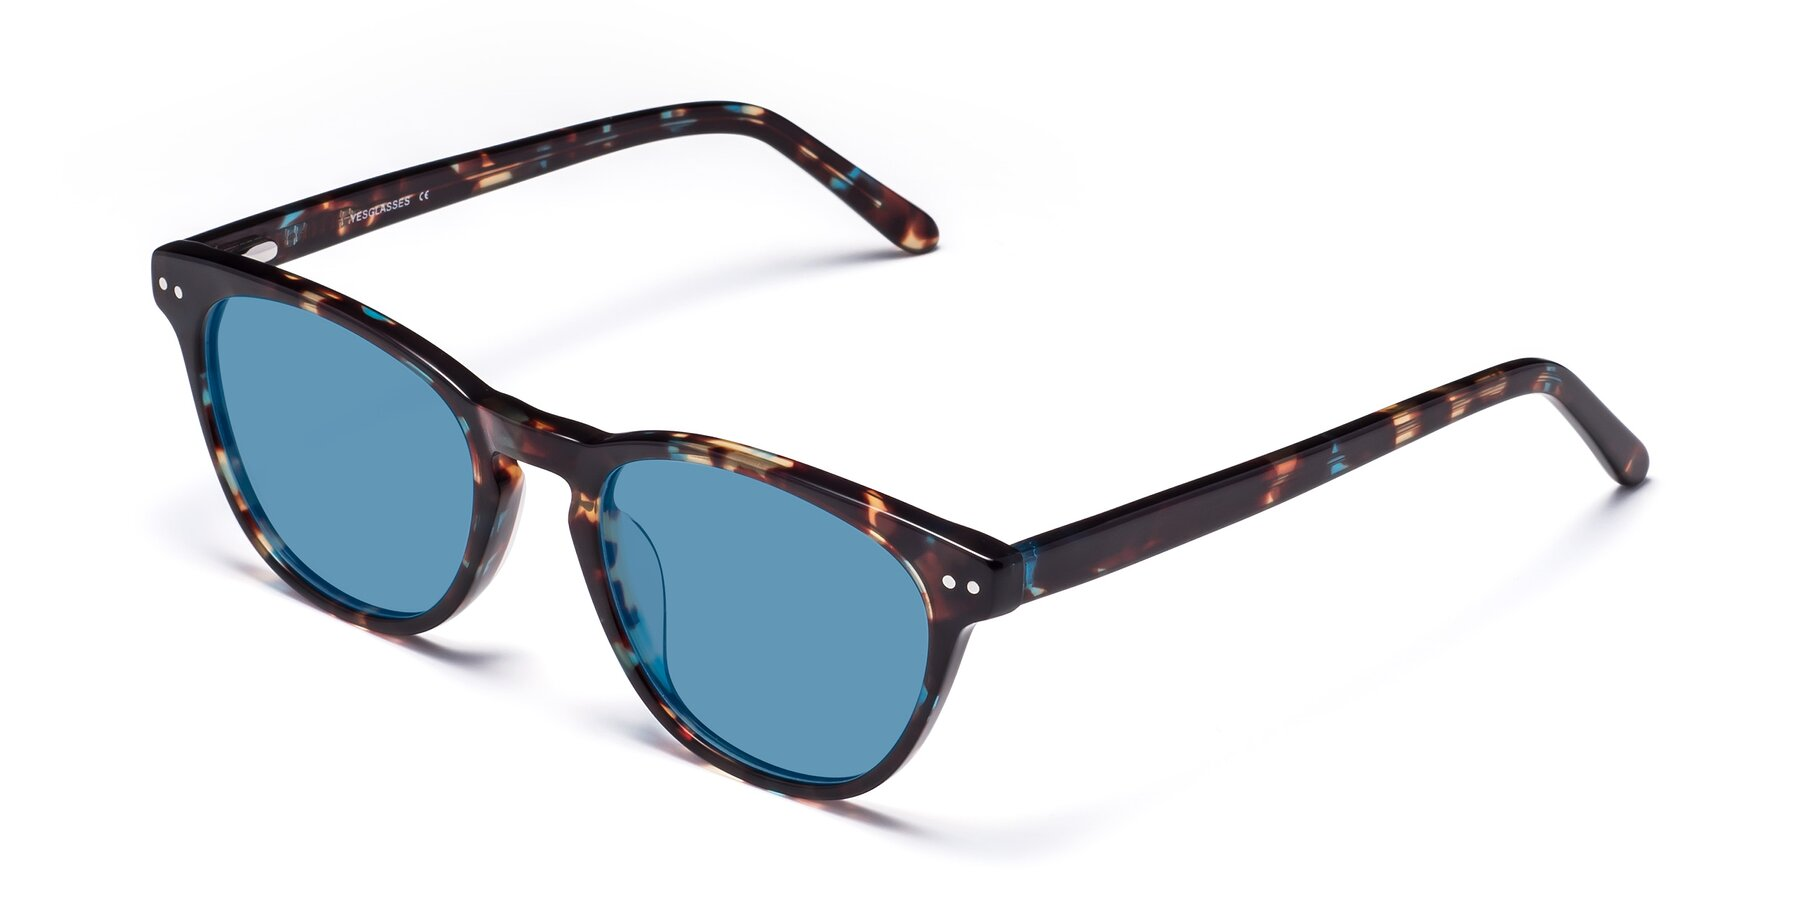 Angle of Blaze in Tortoise-Blue with Medium Blue Tinted Lenses